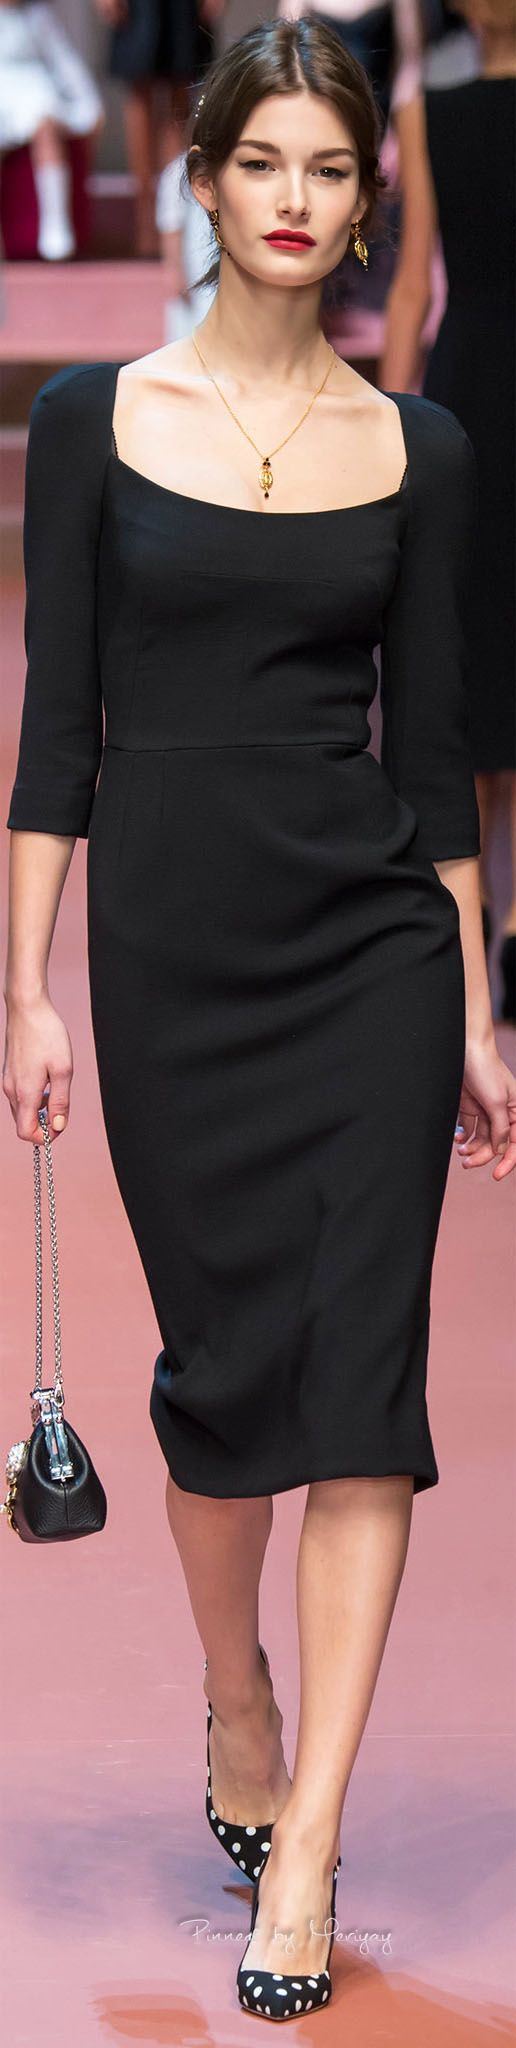 Black dress comments - Find This Pin And More On Funeral Wear